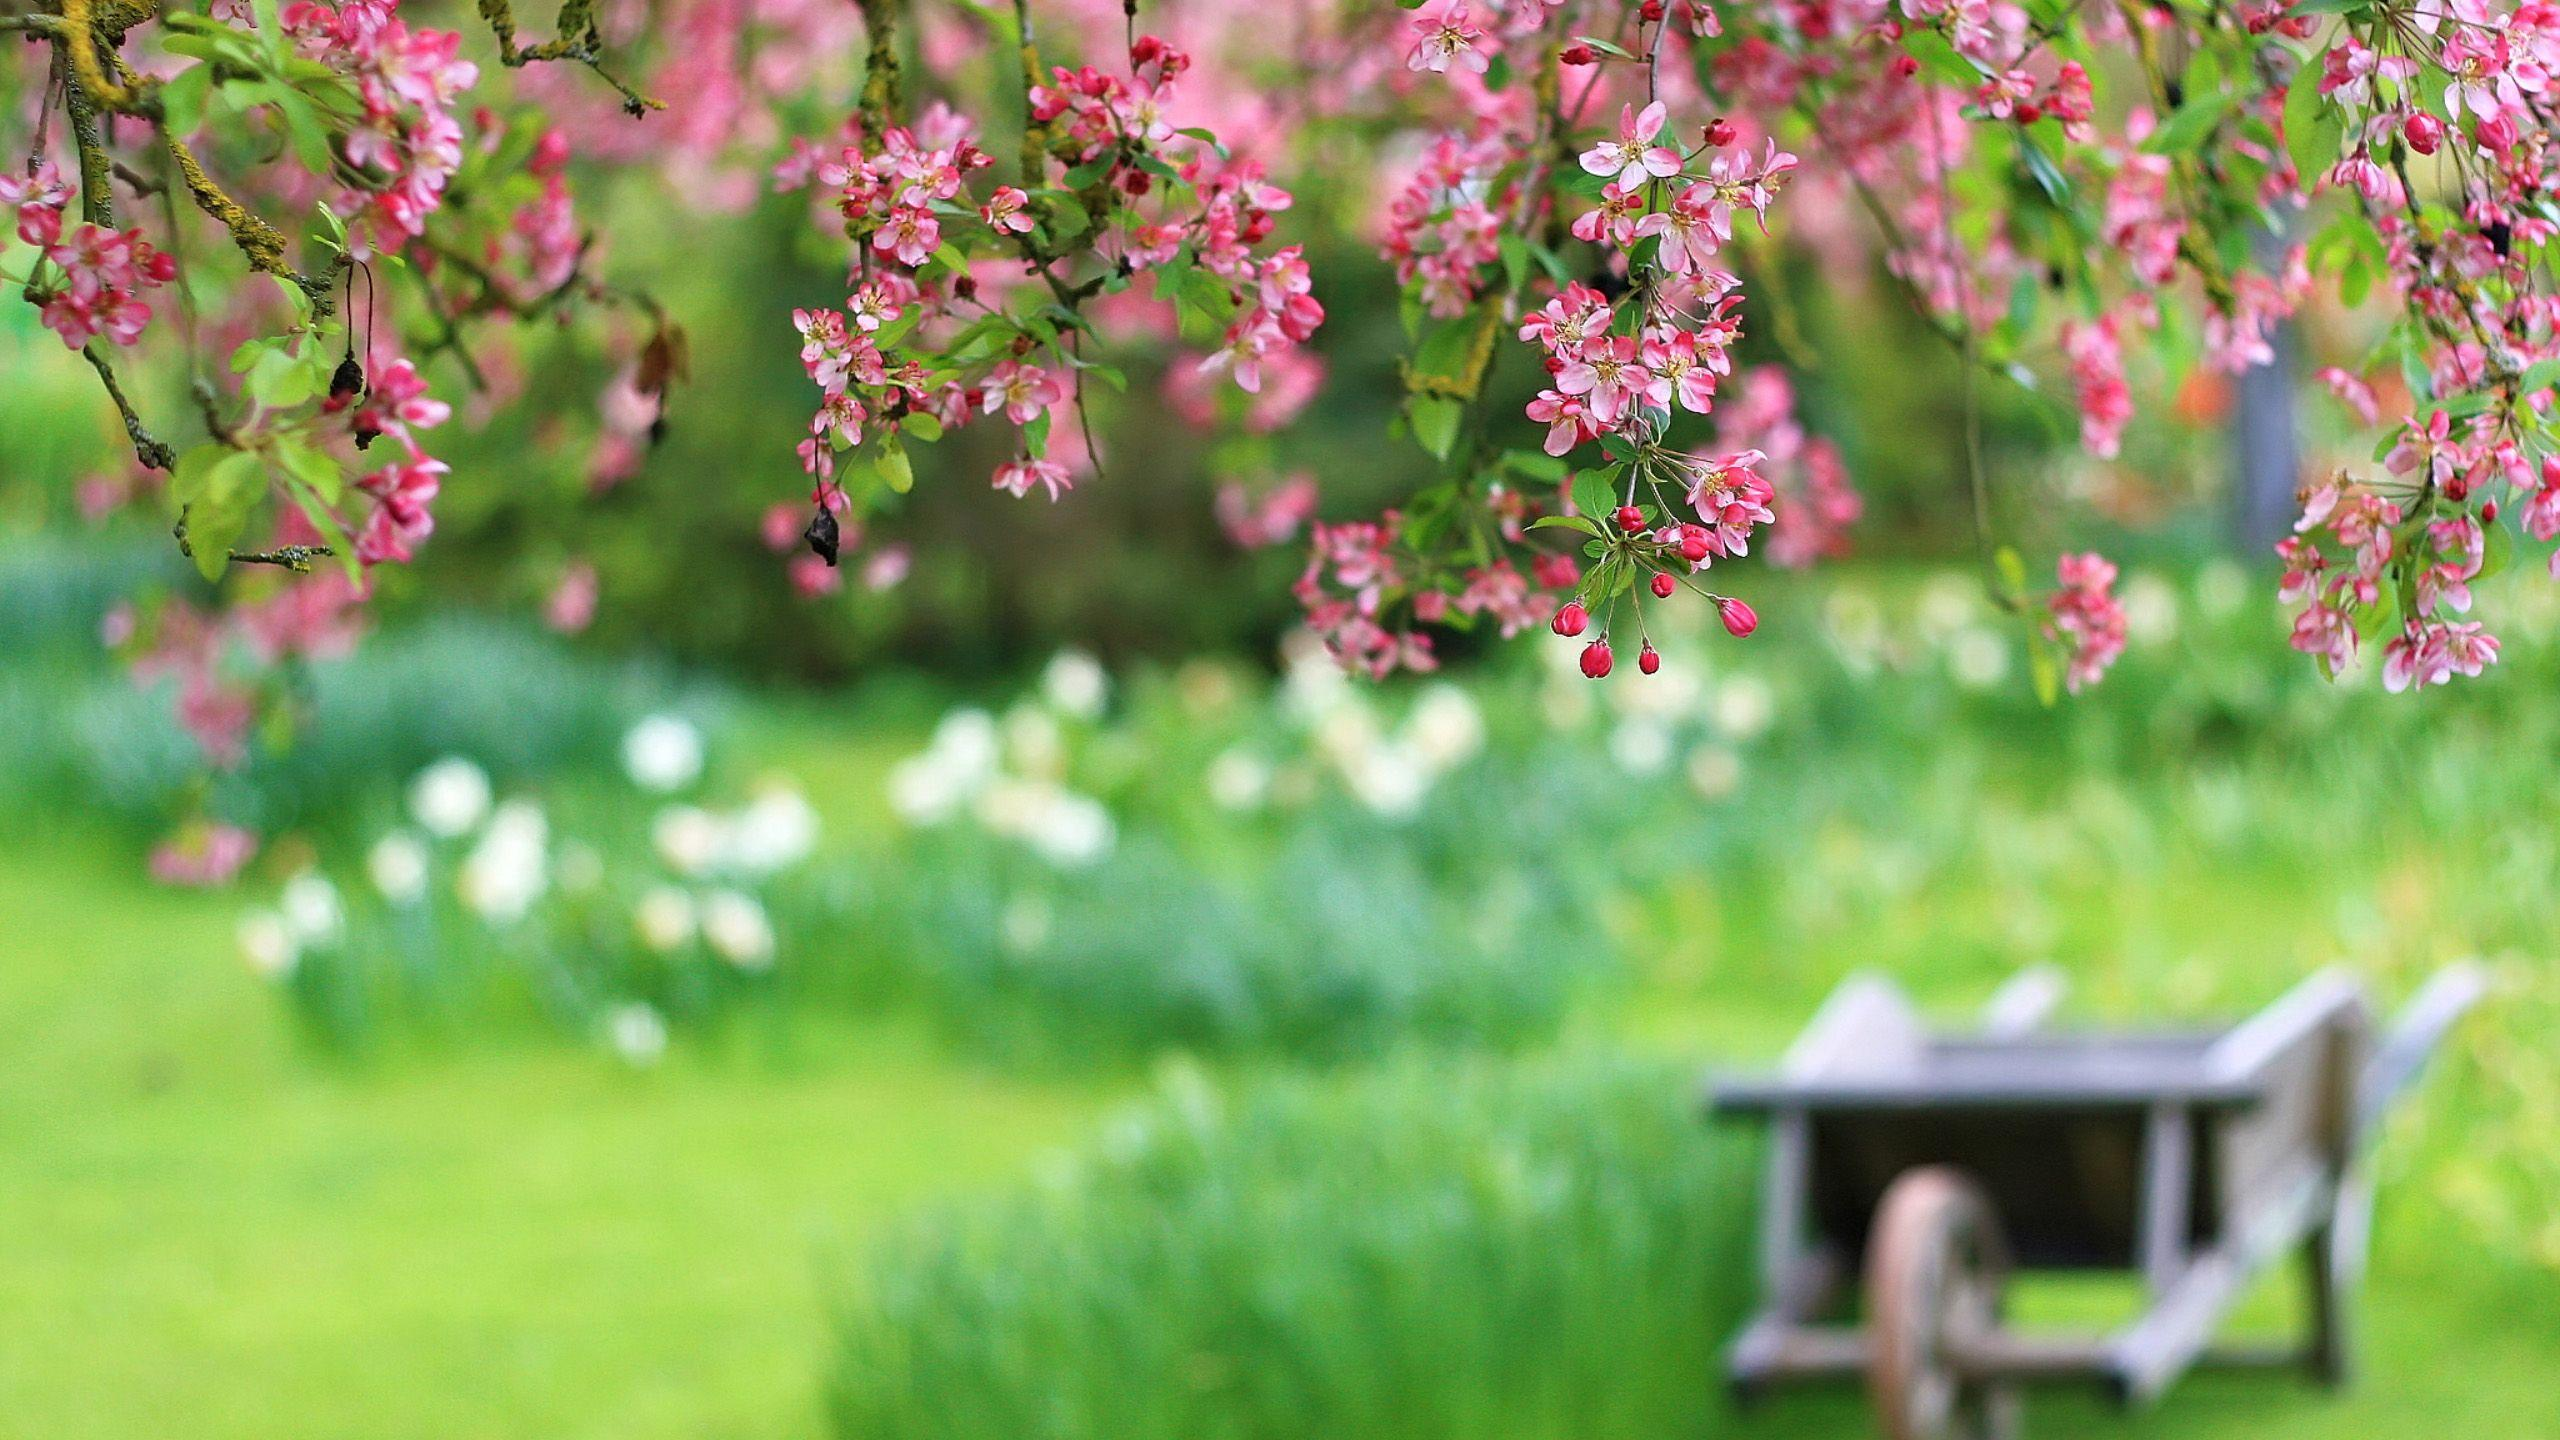 Nature Spring | Free Desktop Wallpapers for Widescreen, HD and Mobile